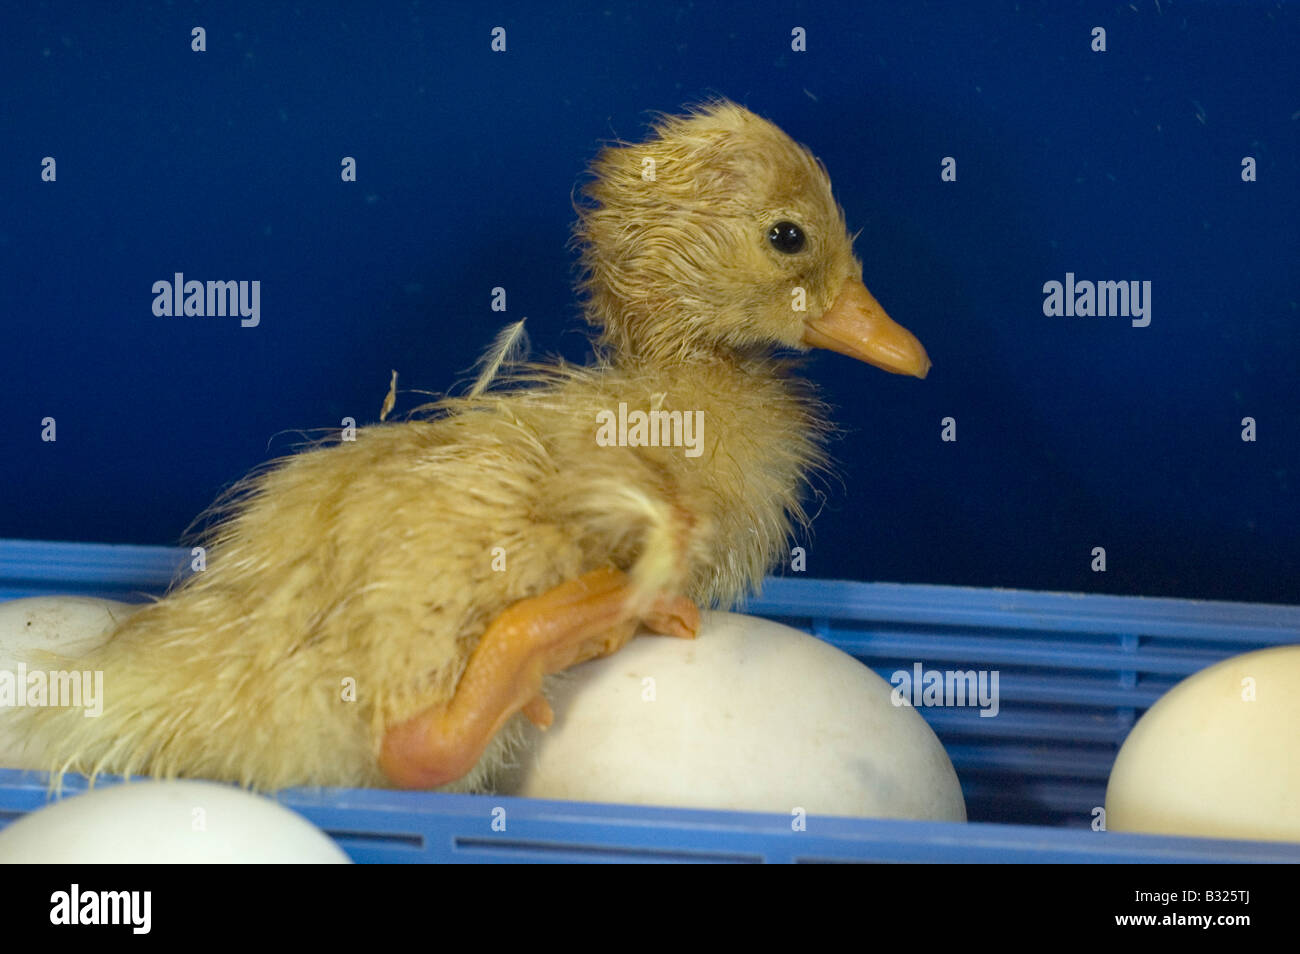 A newly hatched aylesbury duck in an incubator - Stock Image